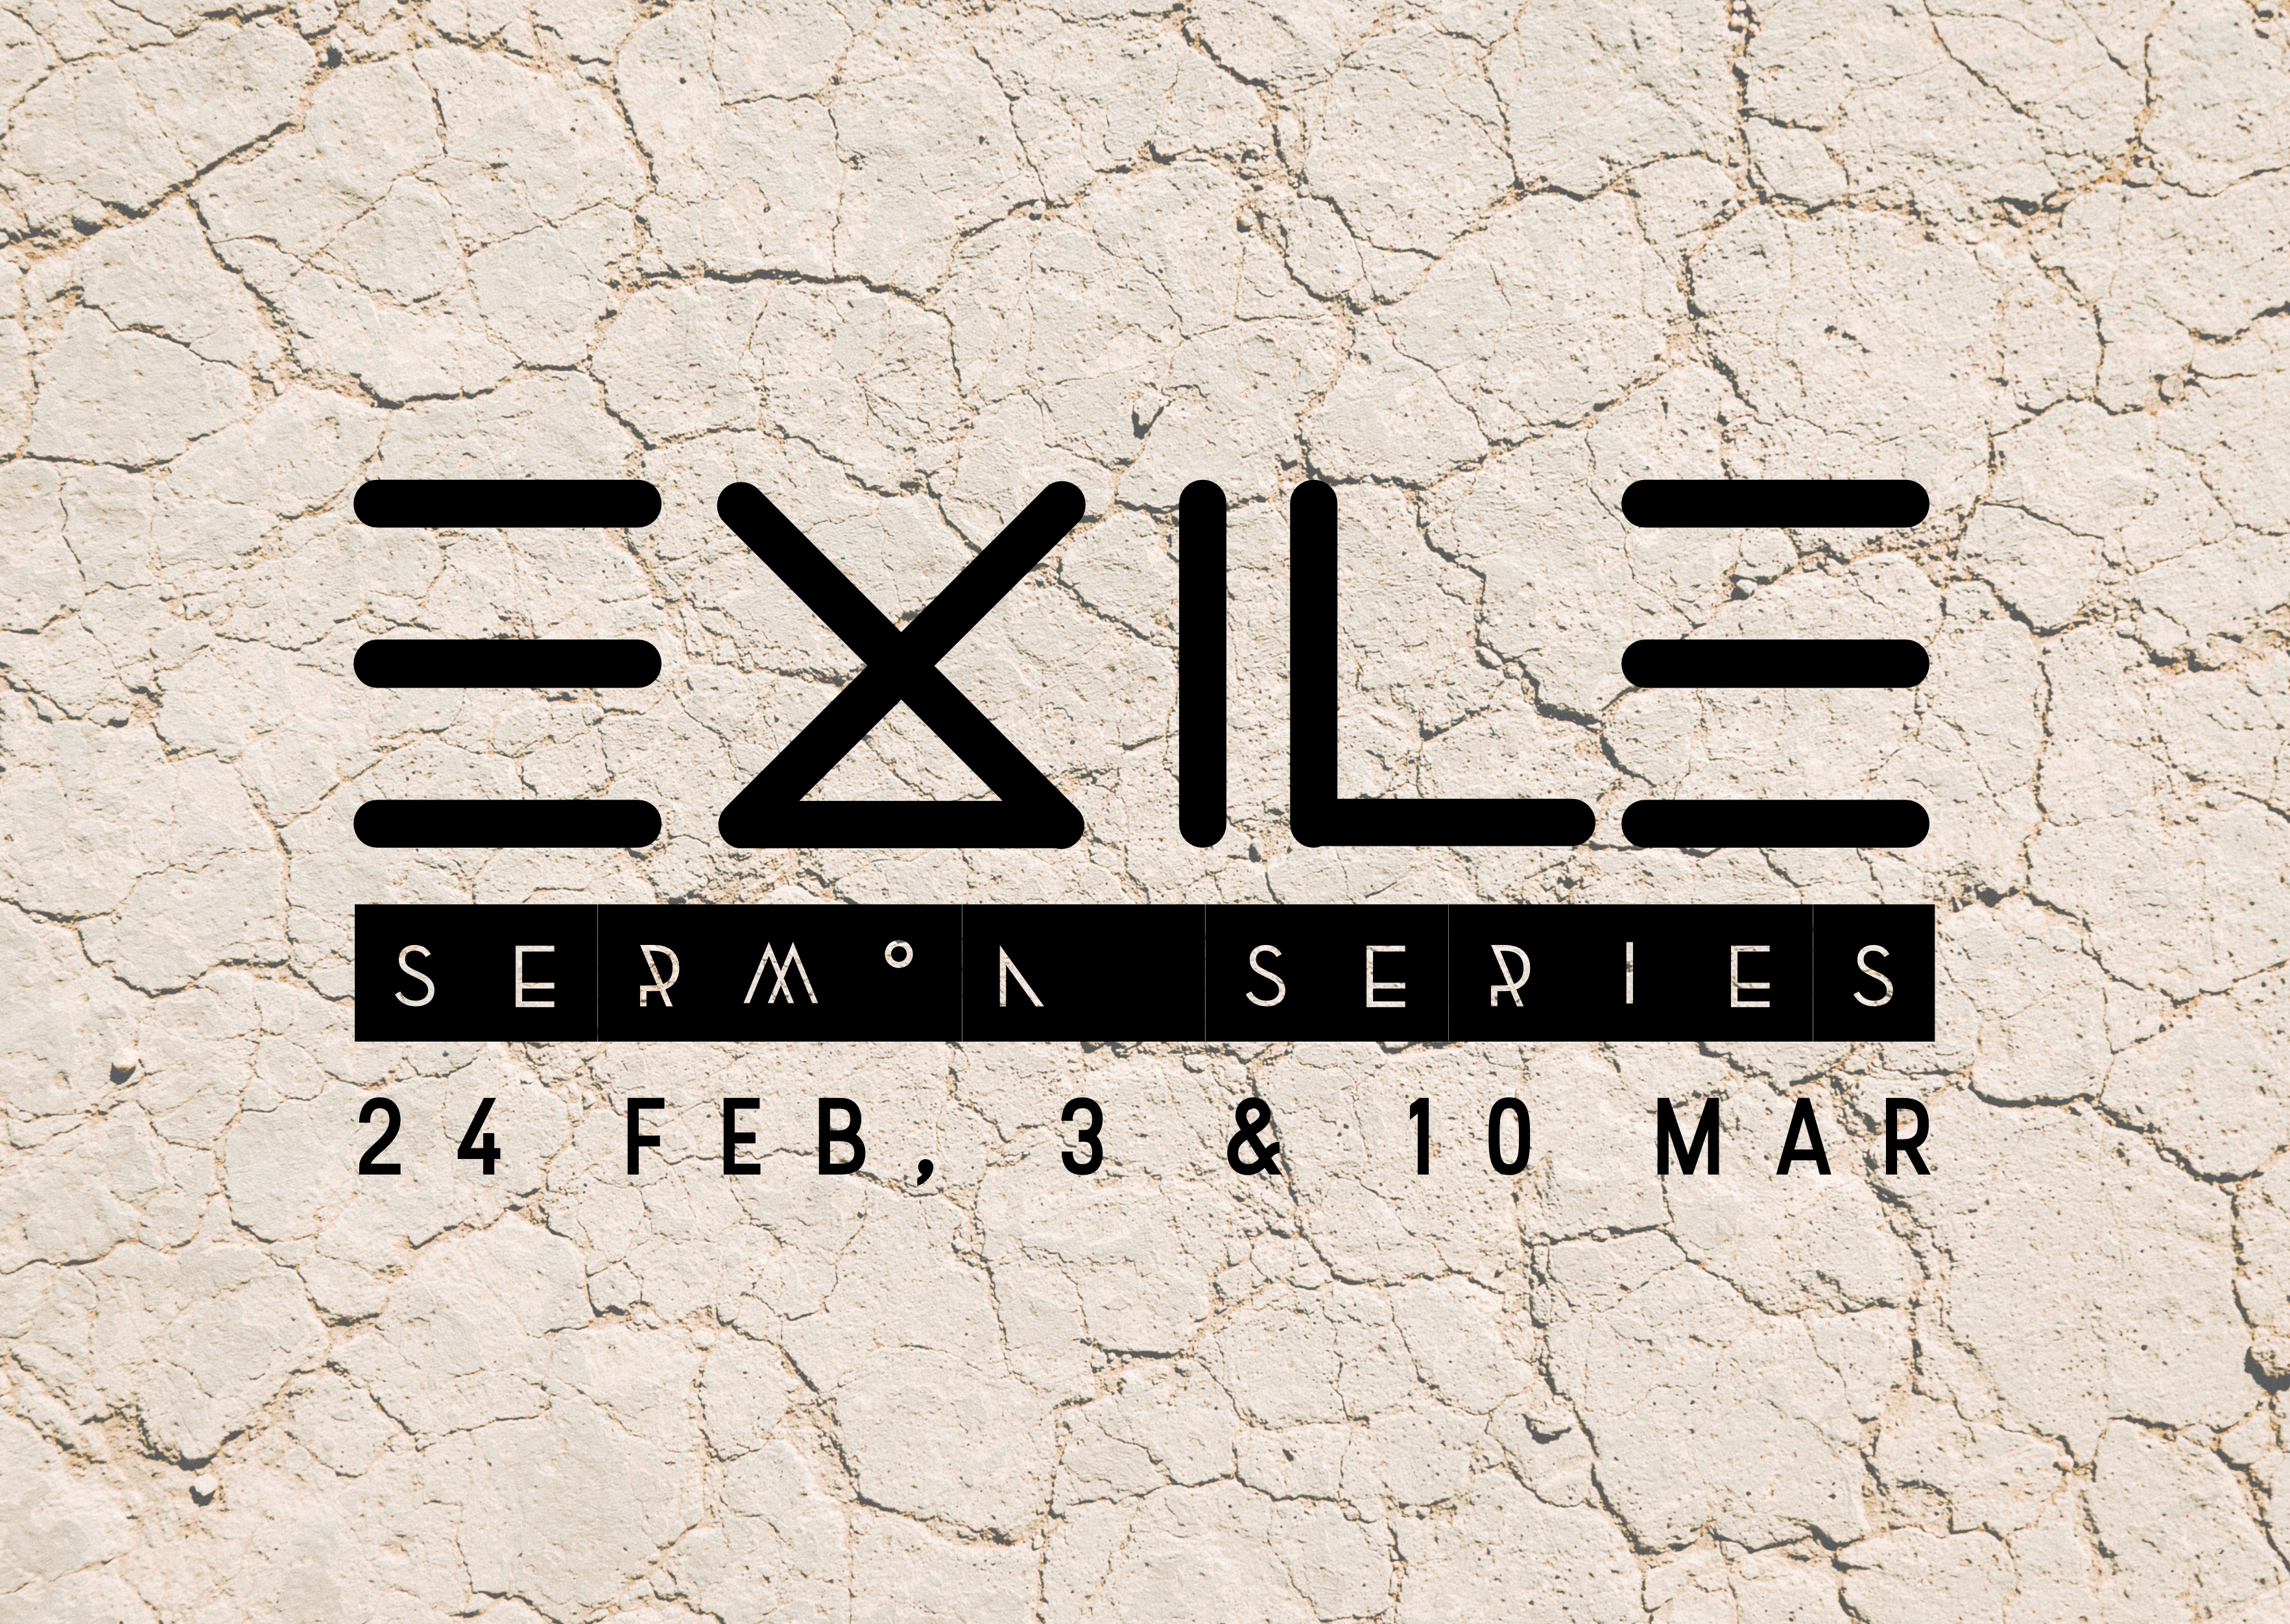 March Series: To Those In Exile